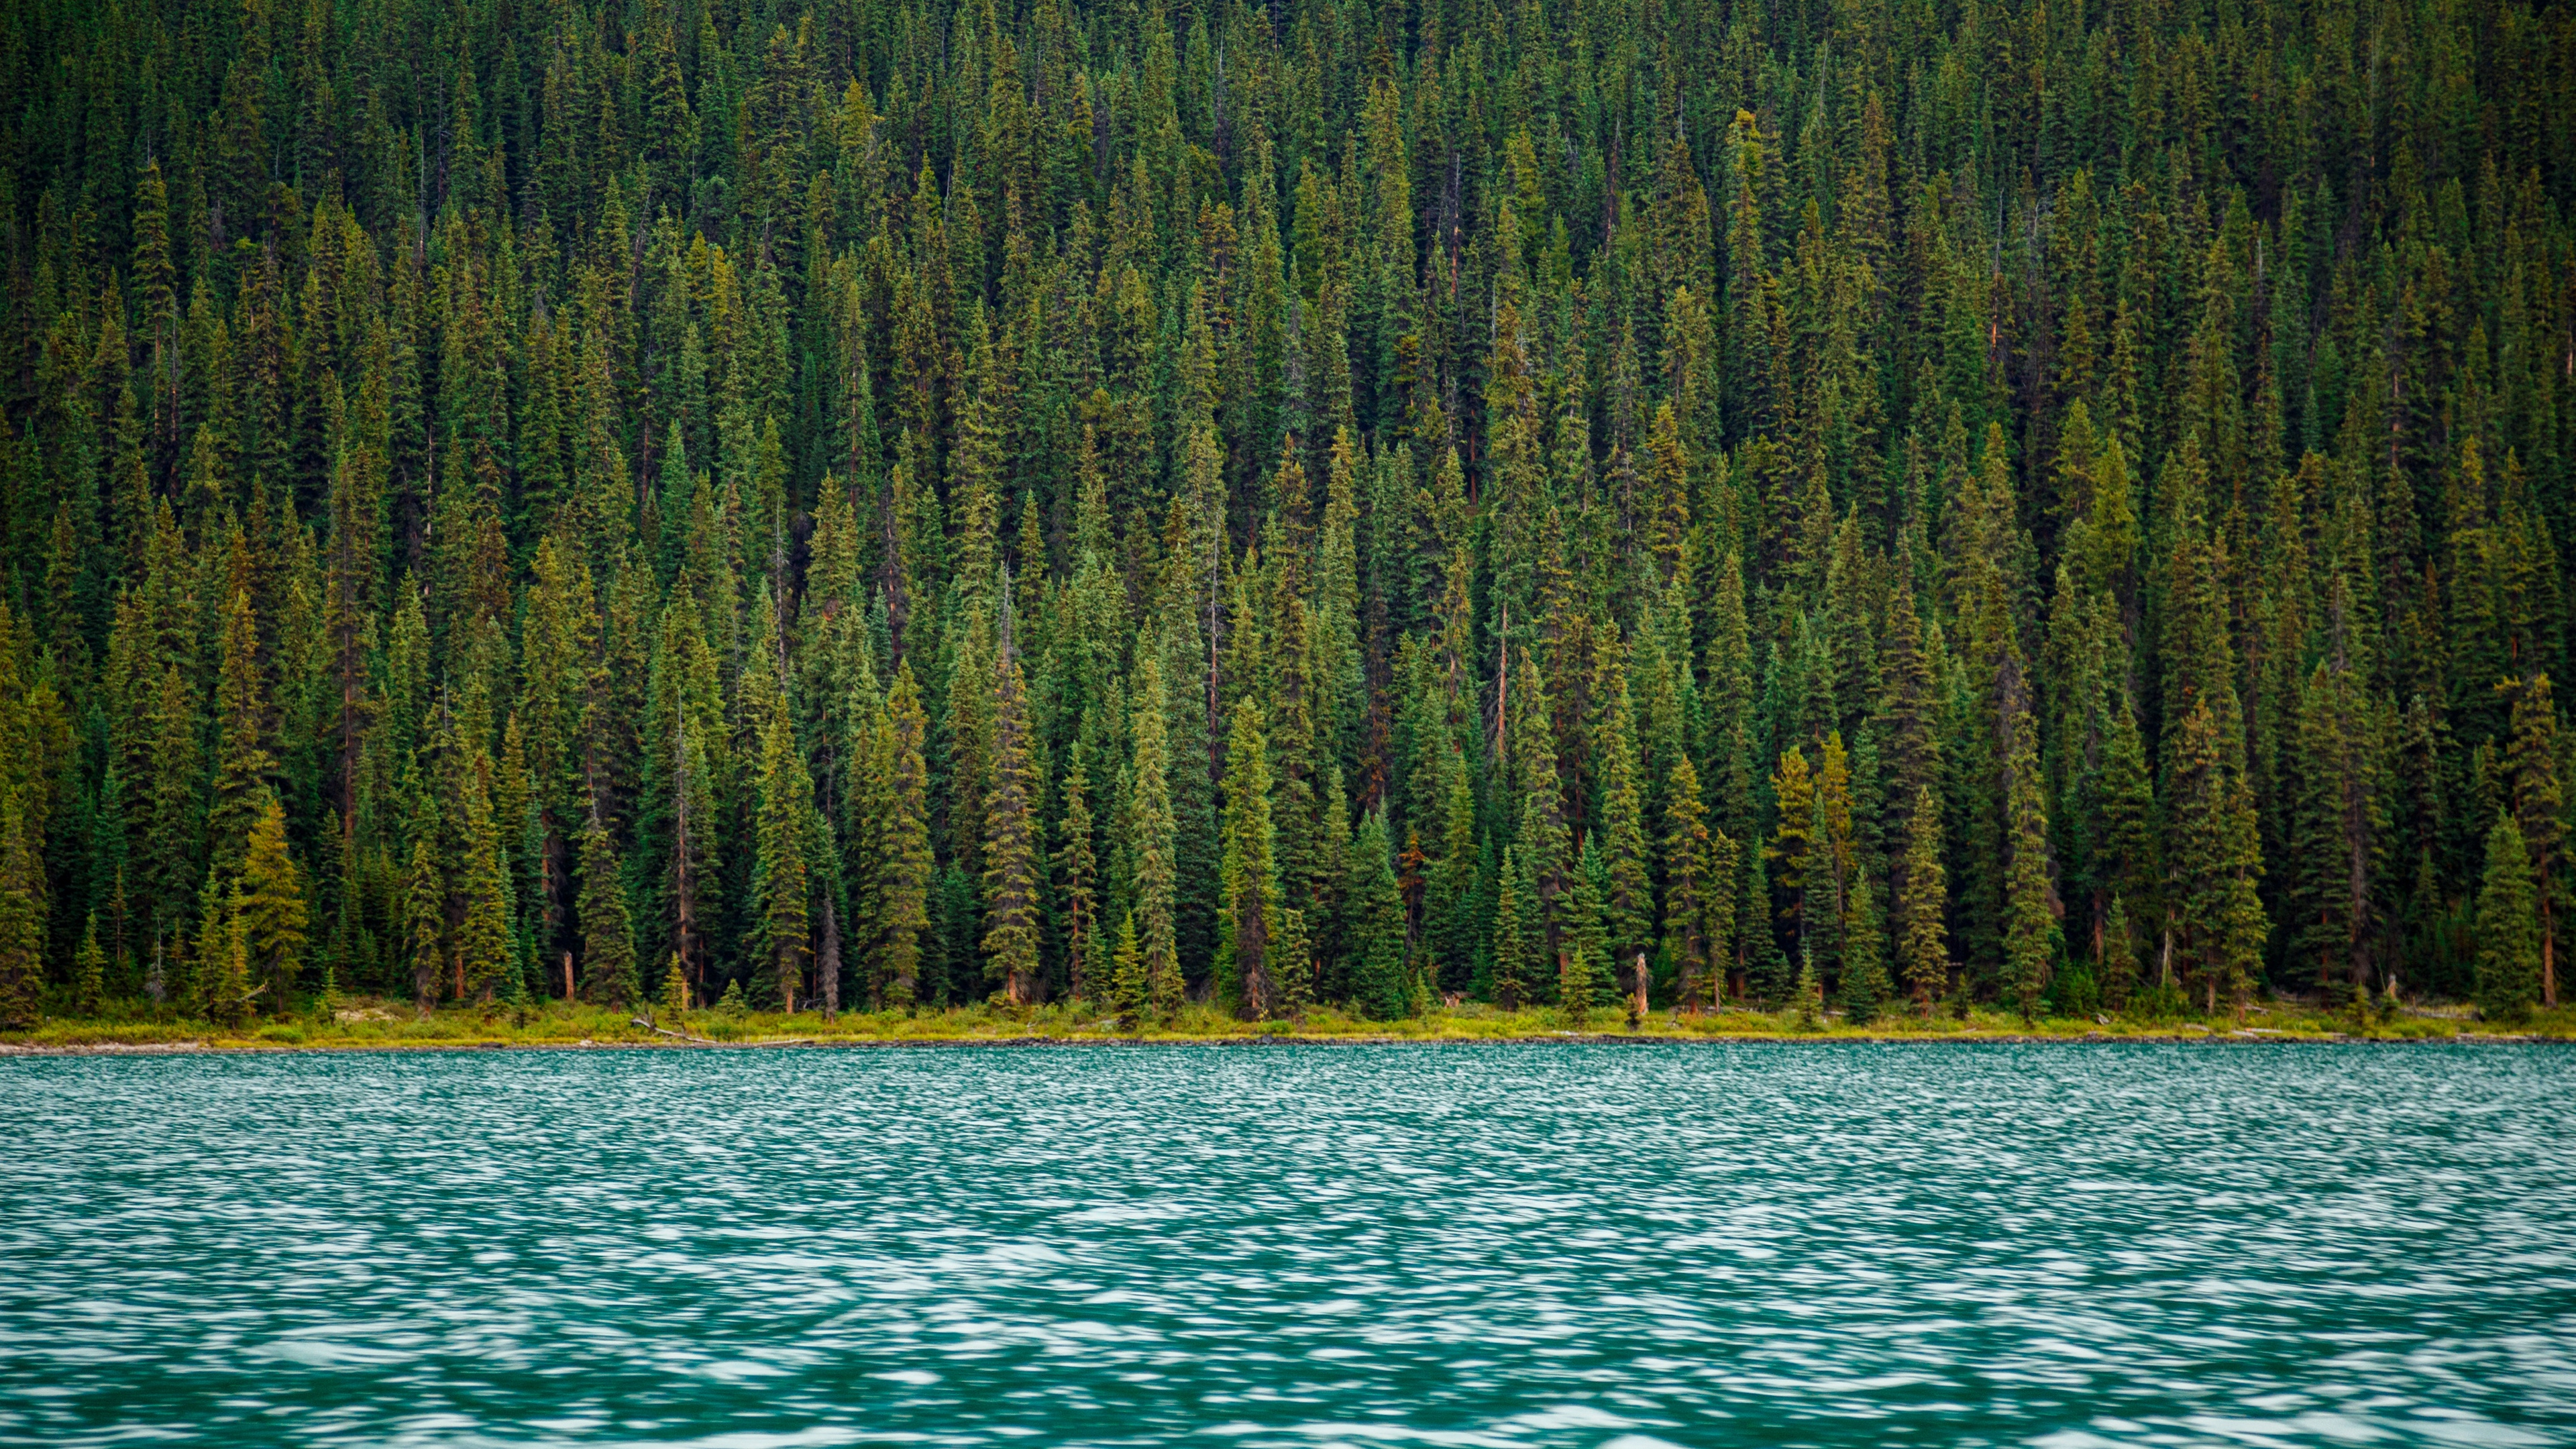 trees river water surface 4k 1541116566 - trees, river, water, surface 4k - Water, Trees, River